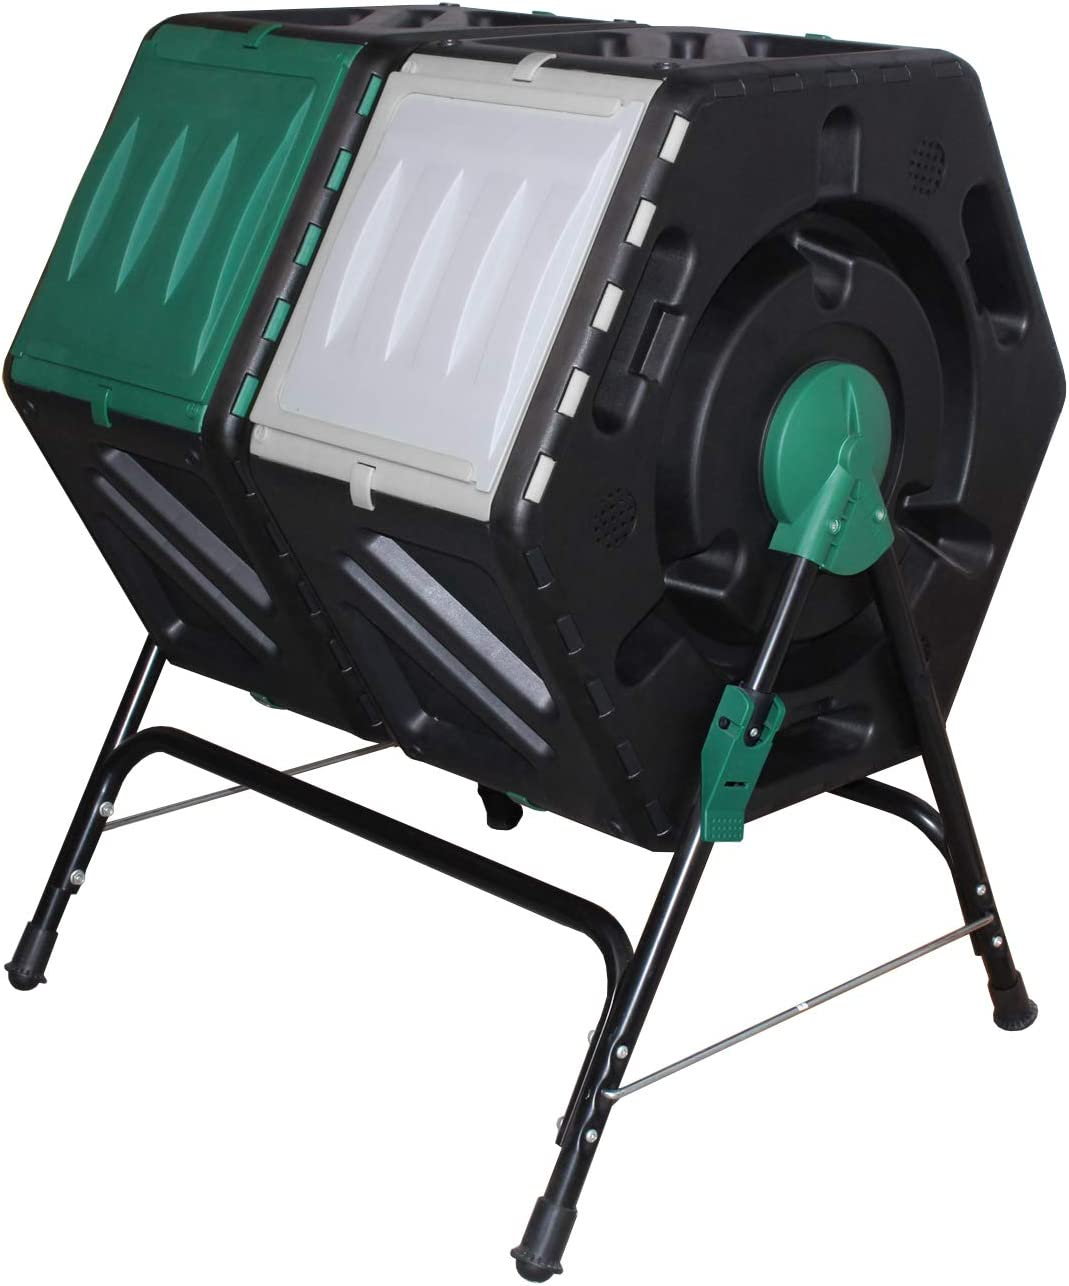 Giading Compost bin Outdoor, Compost Tumbler Easy Tumbling or Rotating, 2 Sliding Doors, (2 X 18.5 Gallon / 2 x 70 Liter).